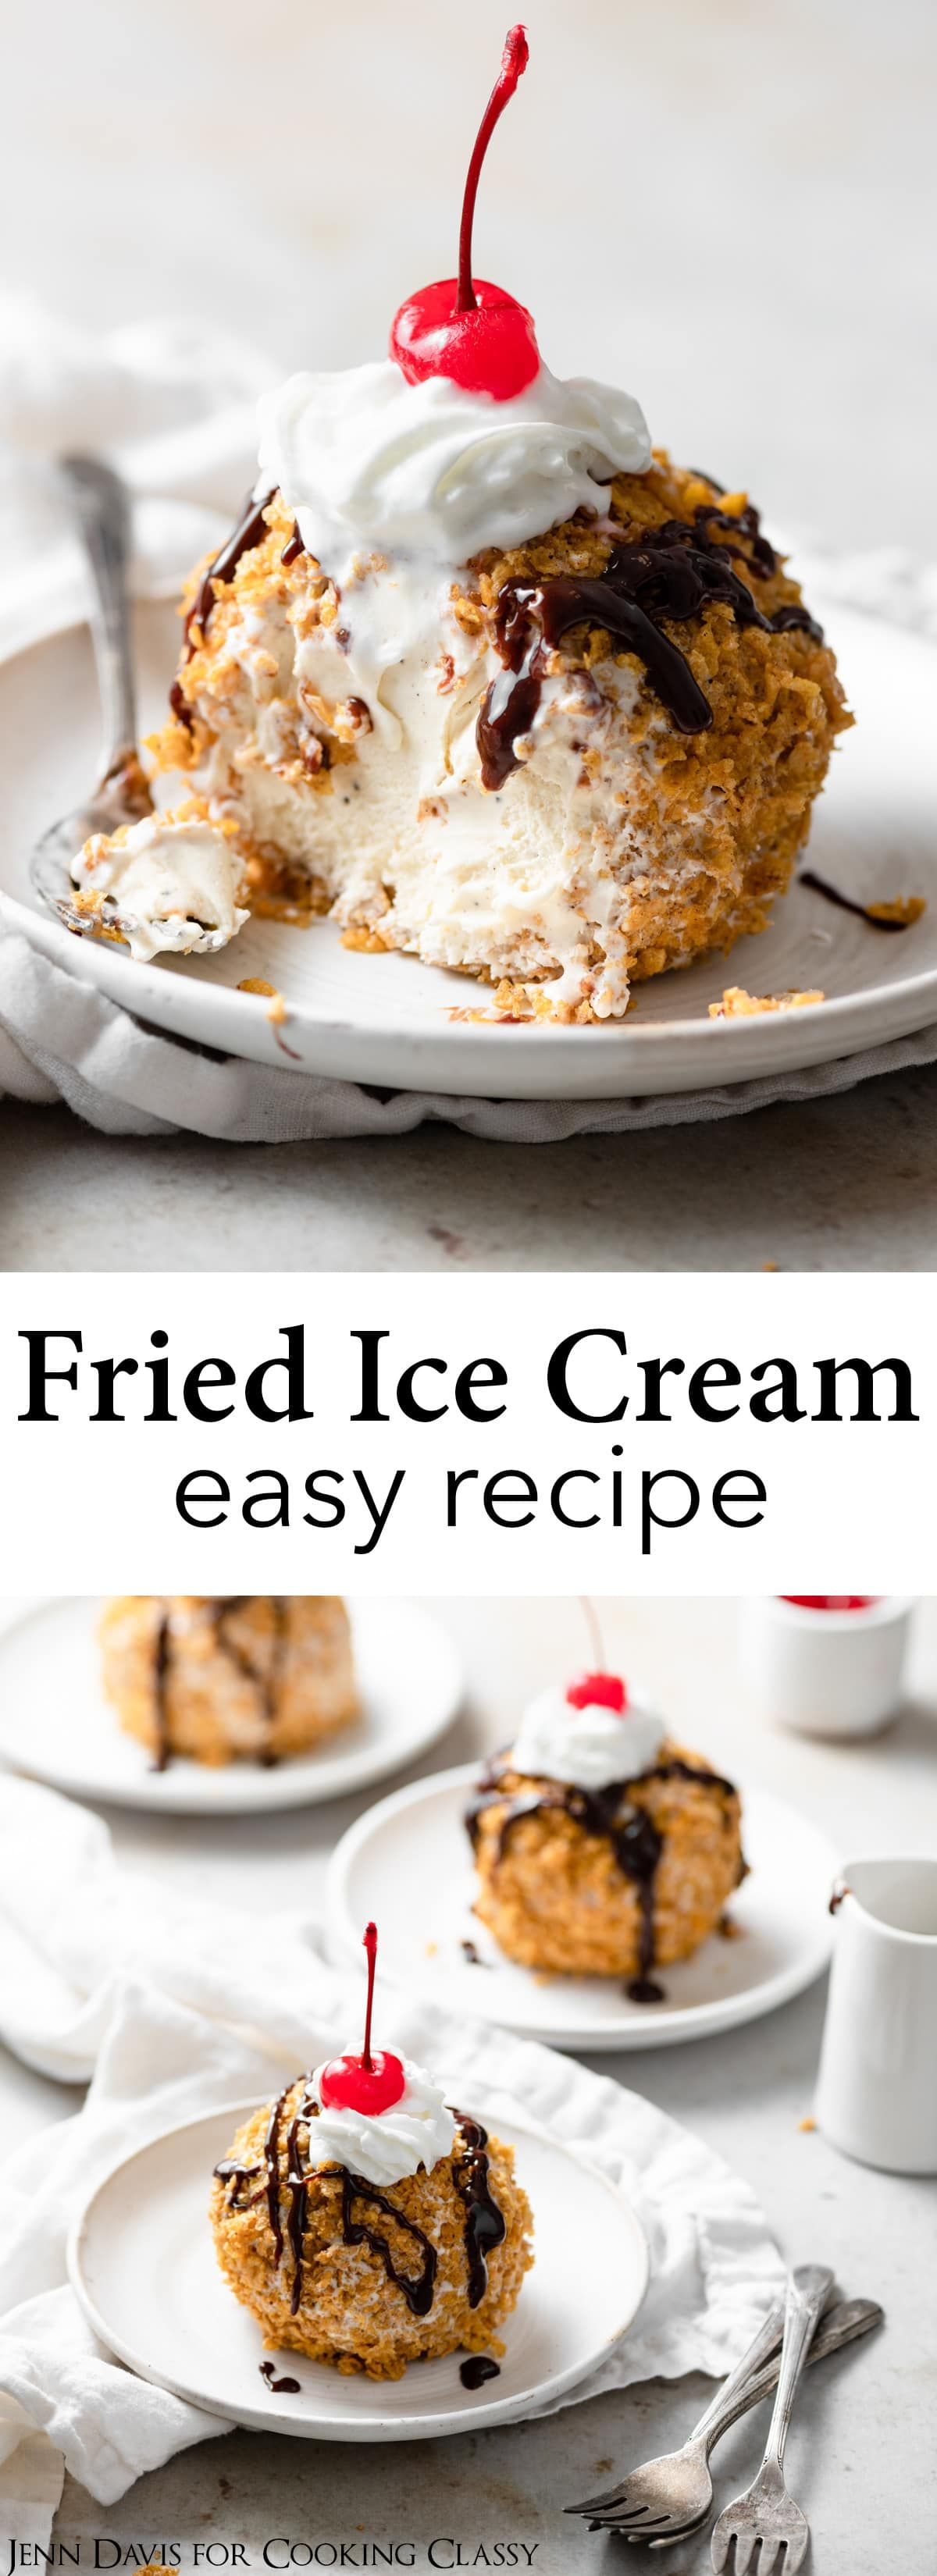 Fried Ice Cream (Cheater Method Without Deep Frying!) - Cooking Classy